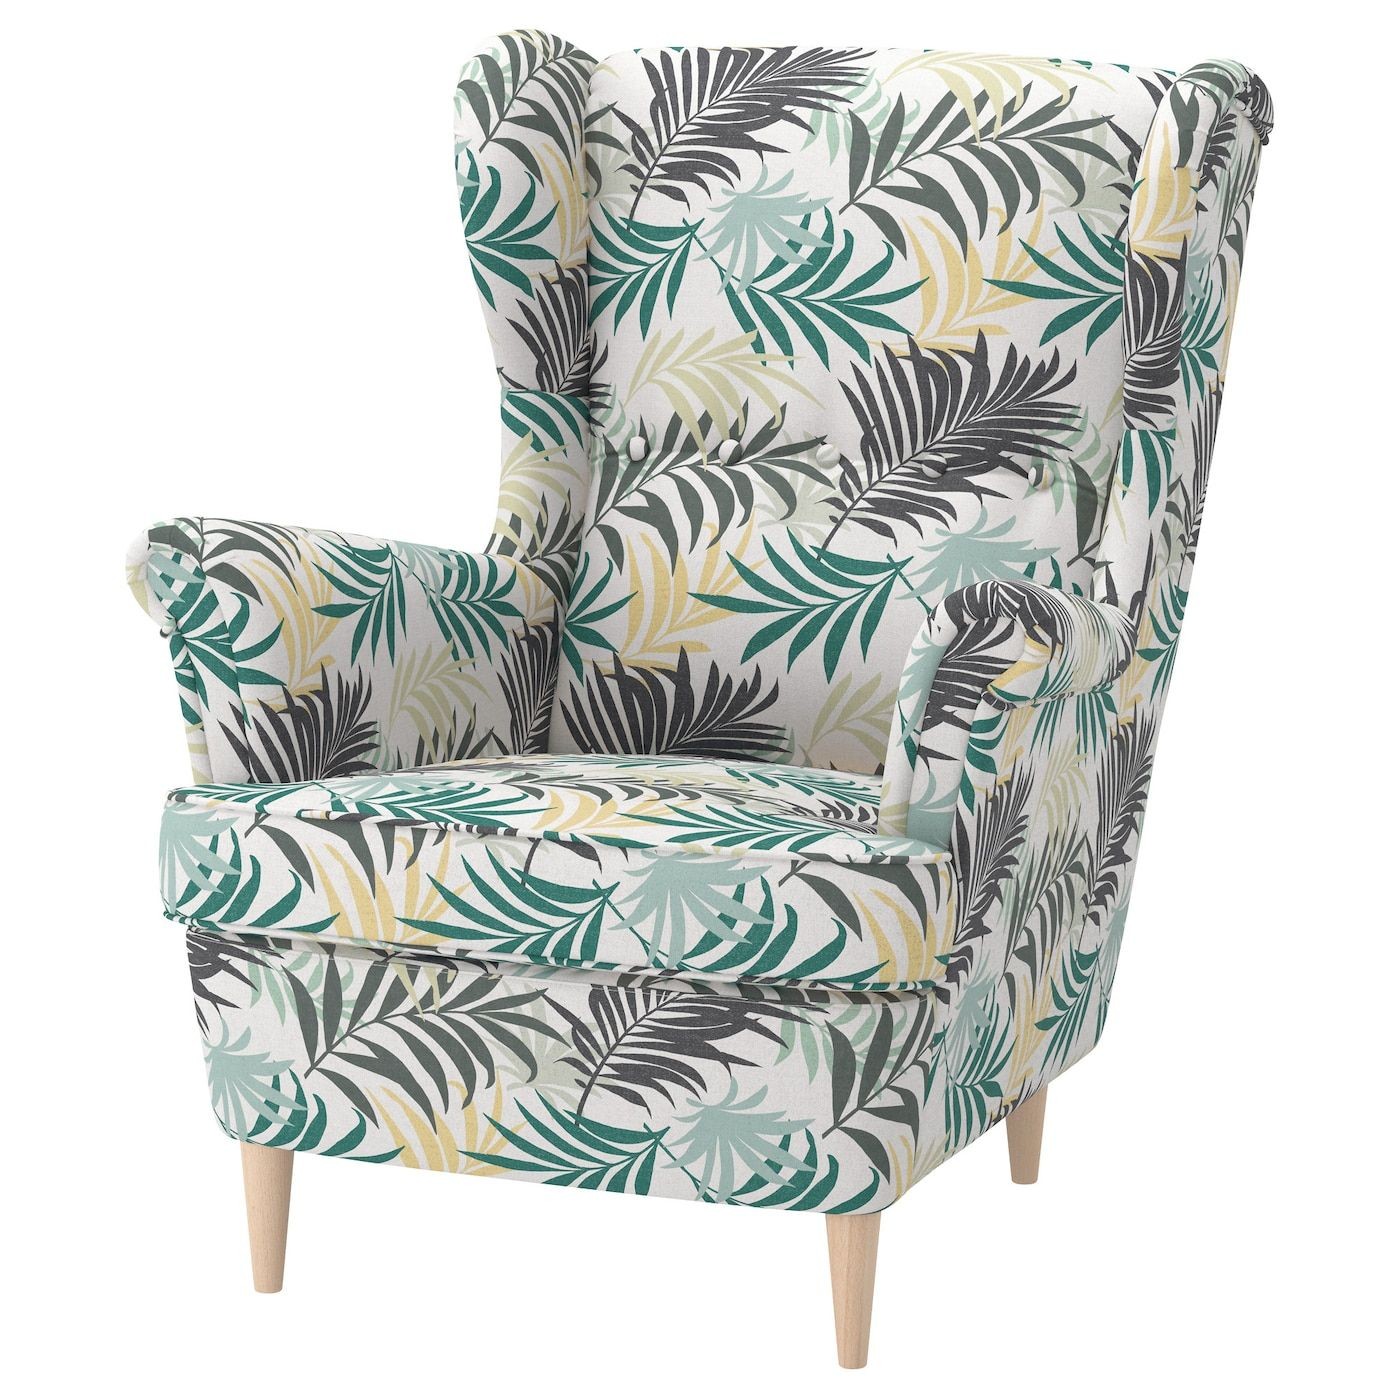 Ikea Us Furniture And Home Furnishings Reading Lamp Floor Living Room Paint Wing Chair